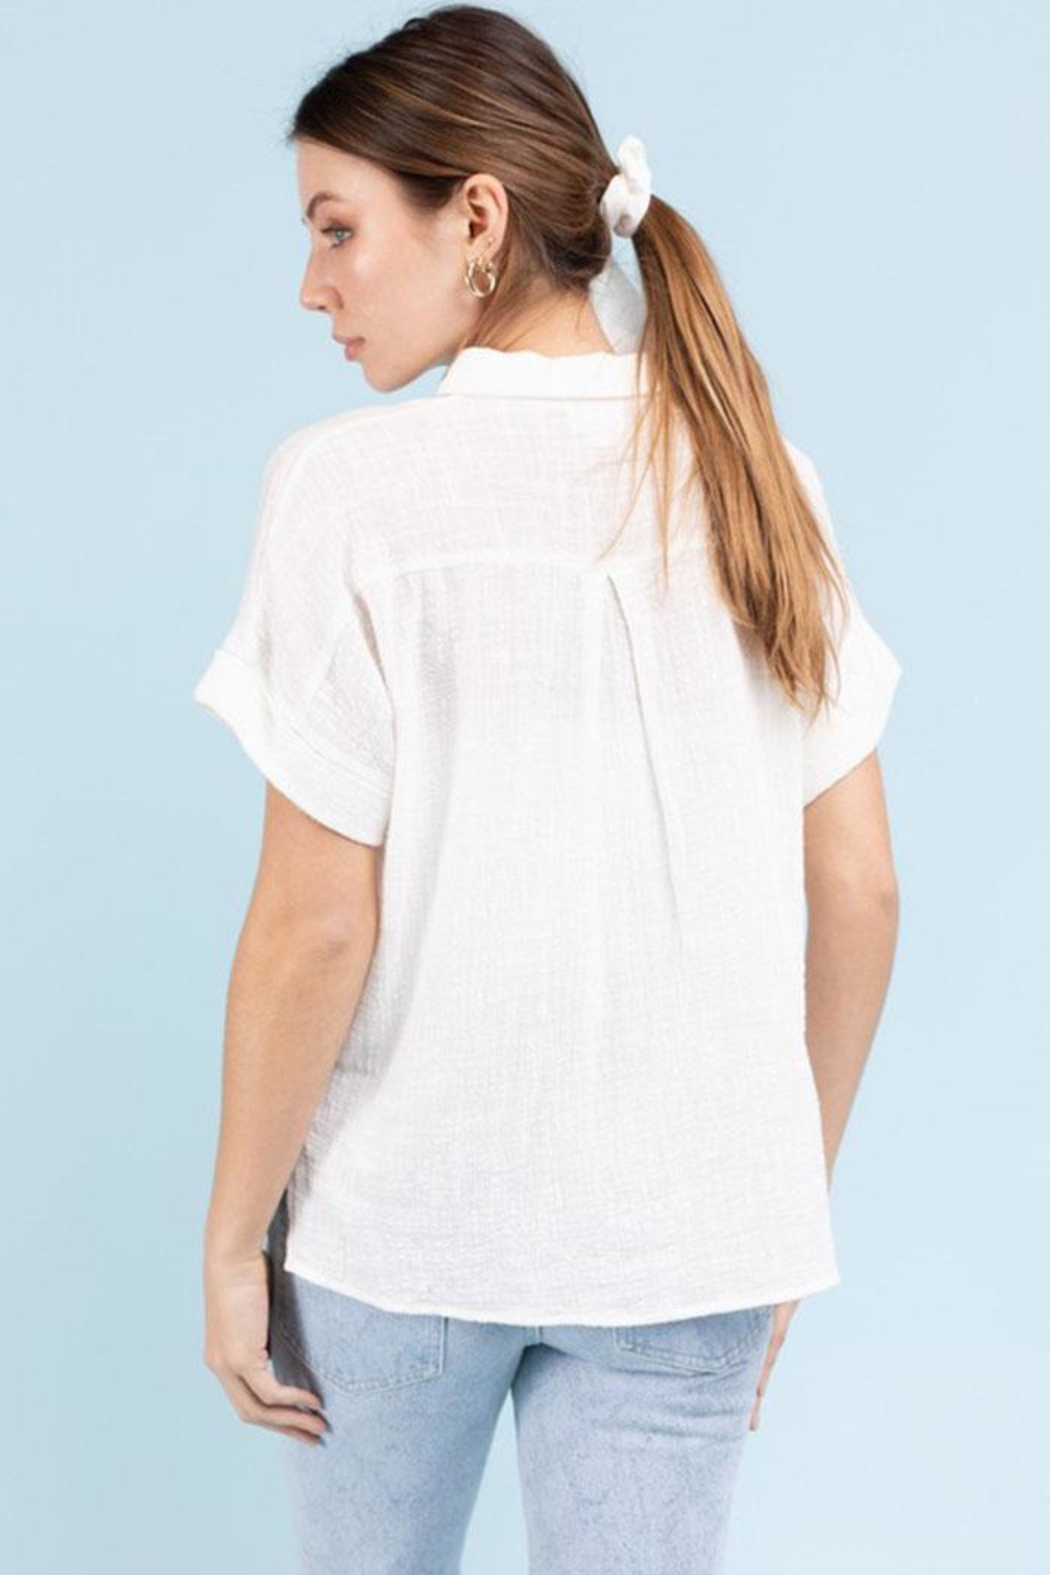 Le Lis Short-Sleeve Button-Down Top - Front Full Image